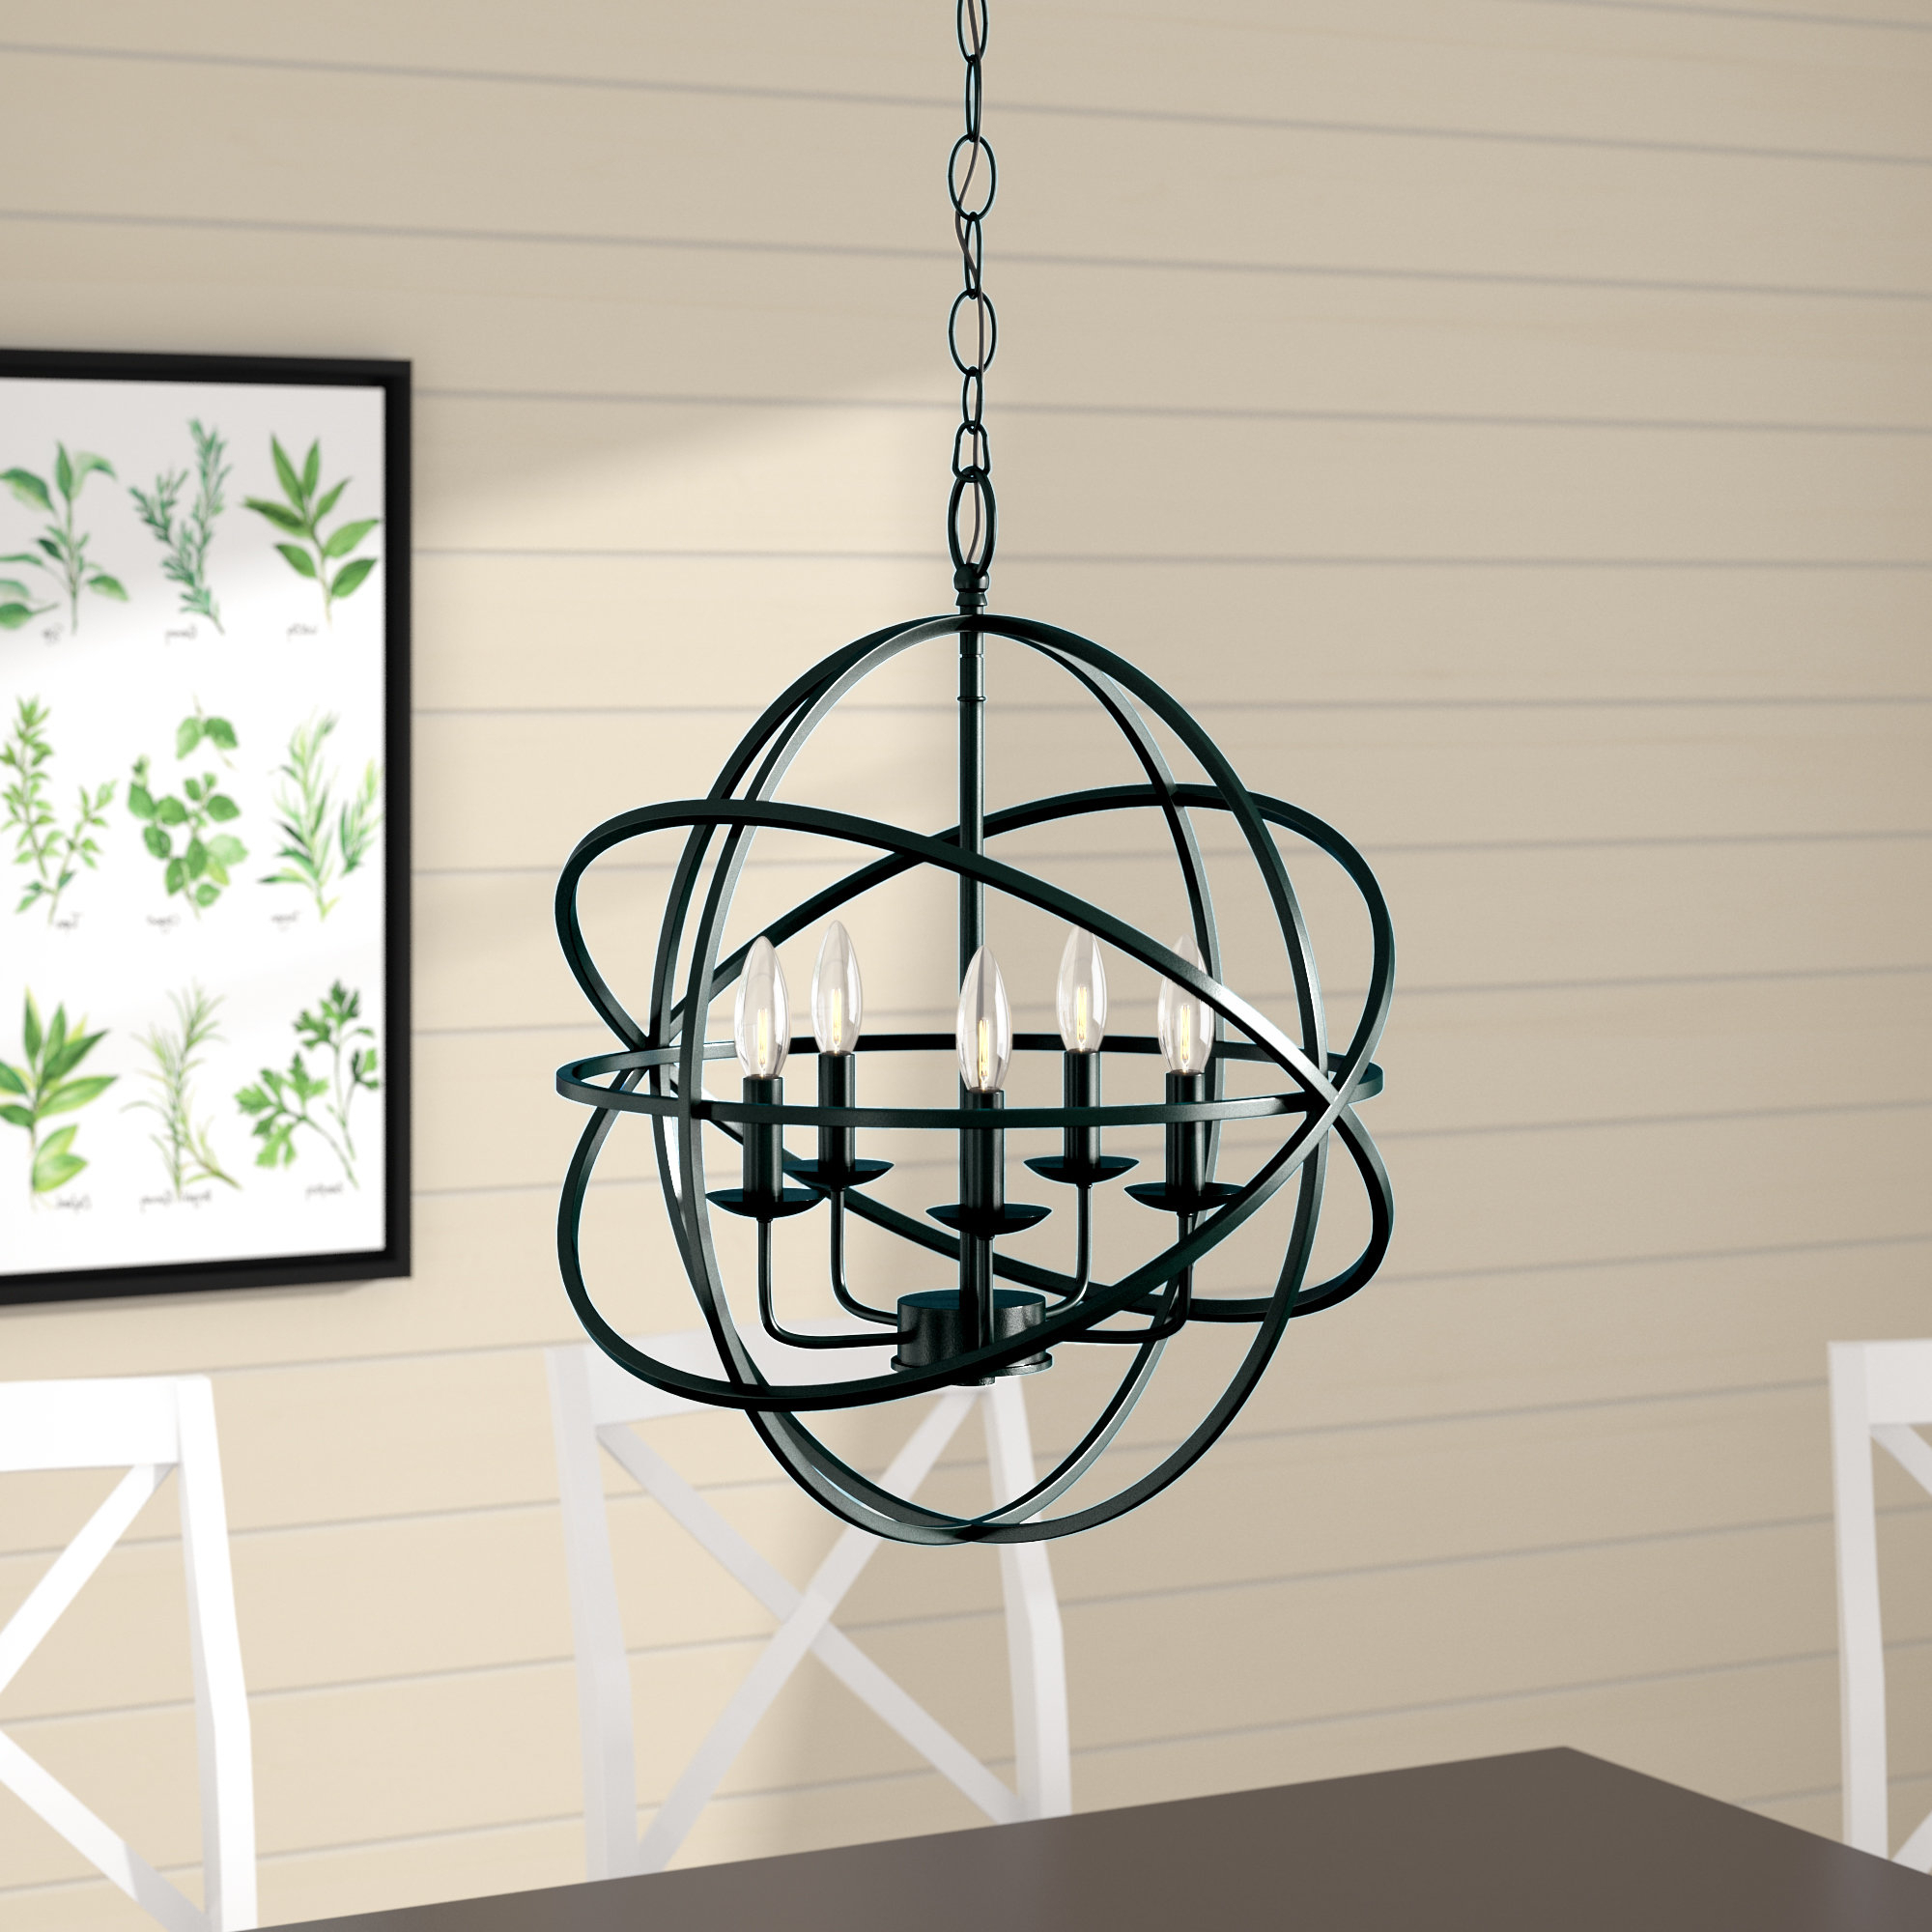 Shipststour 3 Light Globe Chandeliers Pertaining To Current Hankinson 5 Light Globe Chandelier (View 12 of 25)